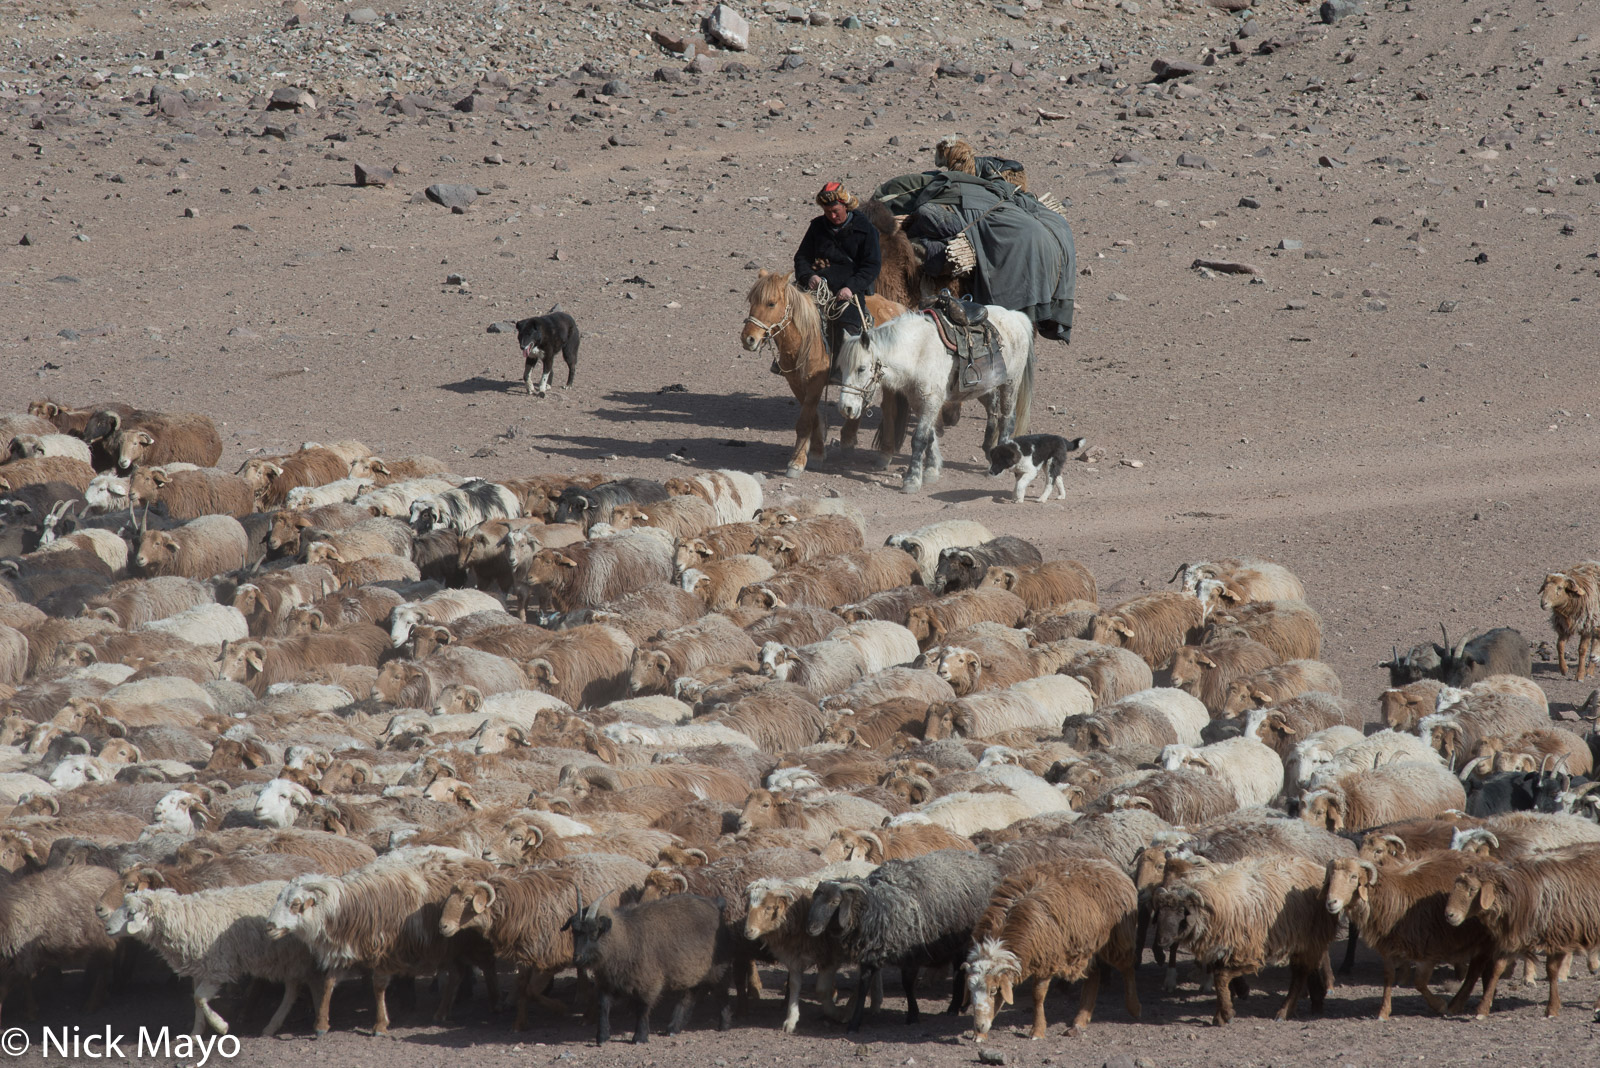 Bayan-Ölgii, Camel, Dog, Goat, Herding, Horse, Kazakh, Mongolia, Pack Animal, Sheep, photo